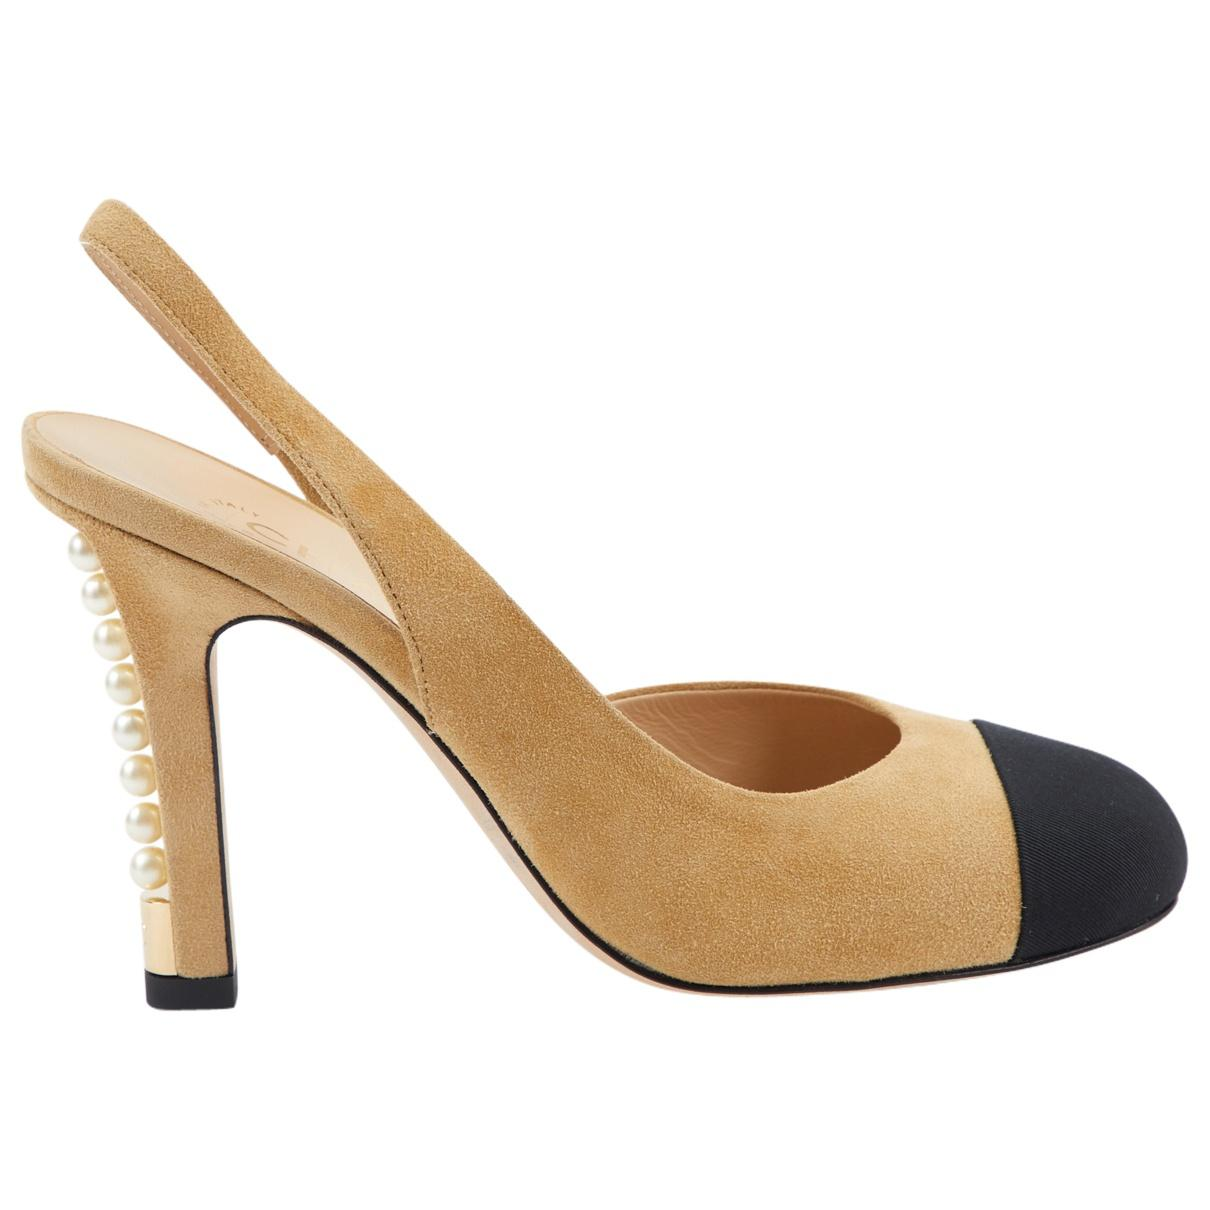 1ef24e857f8 Chanel. Women s Natural Slingback Heels. £442 From Vestiaire Collective